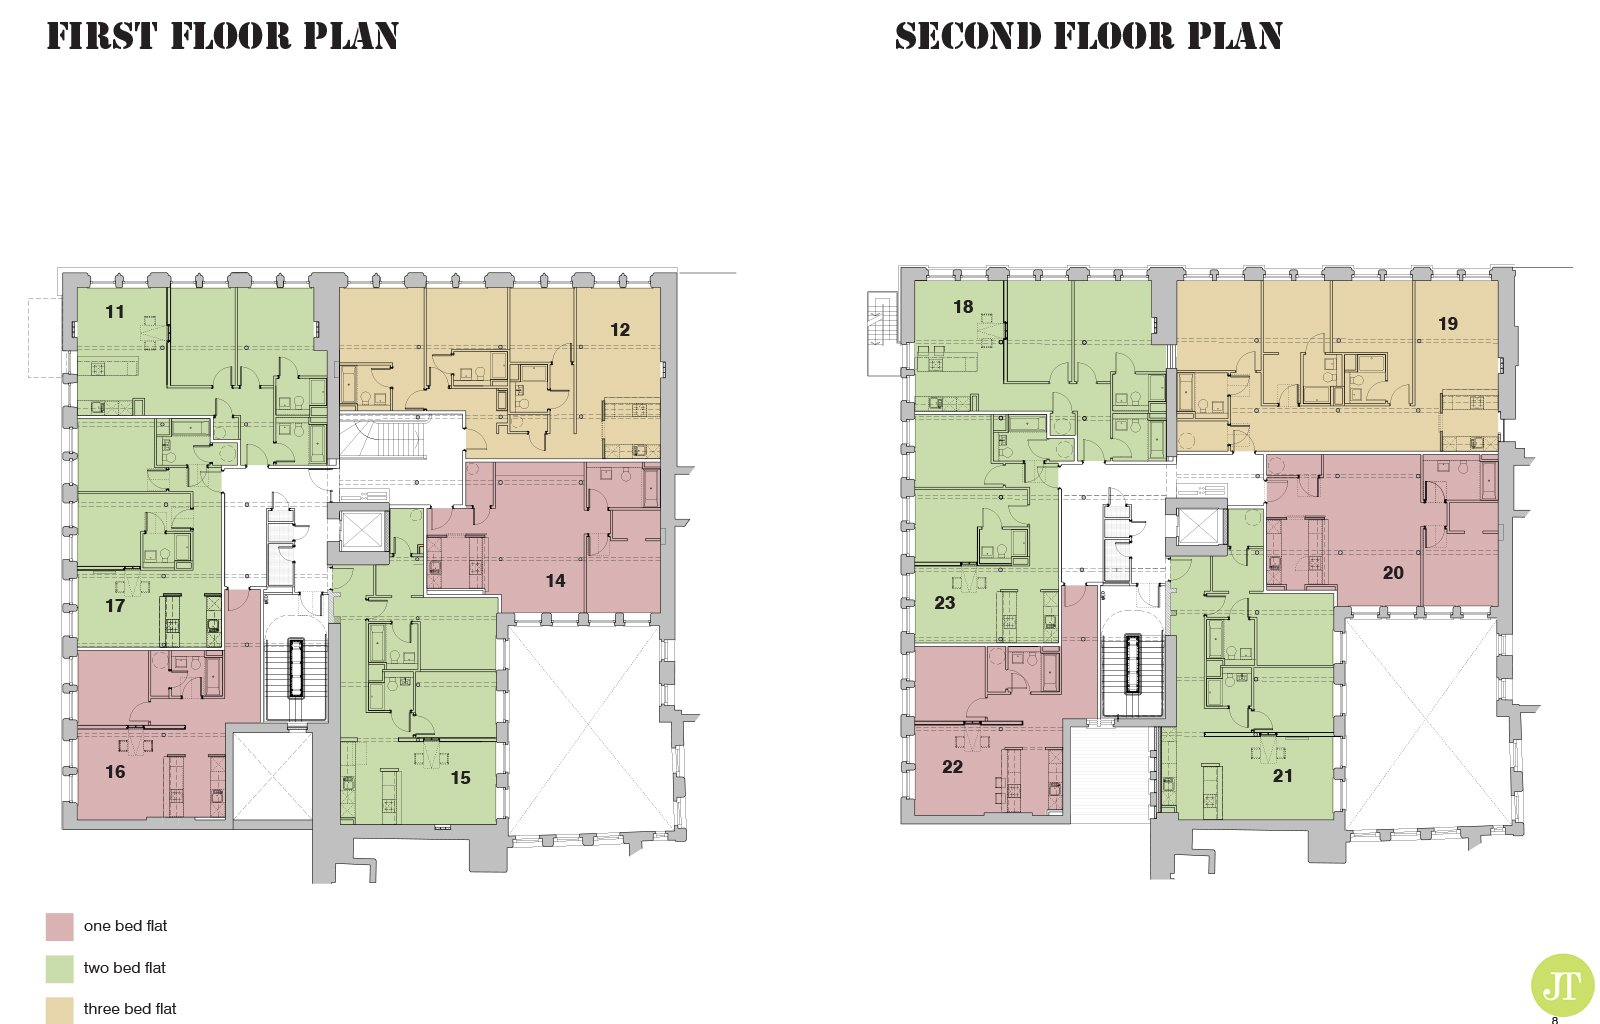 Finlays Warehouse Floor Plans - Dale Street, Manchester